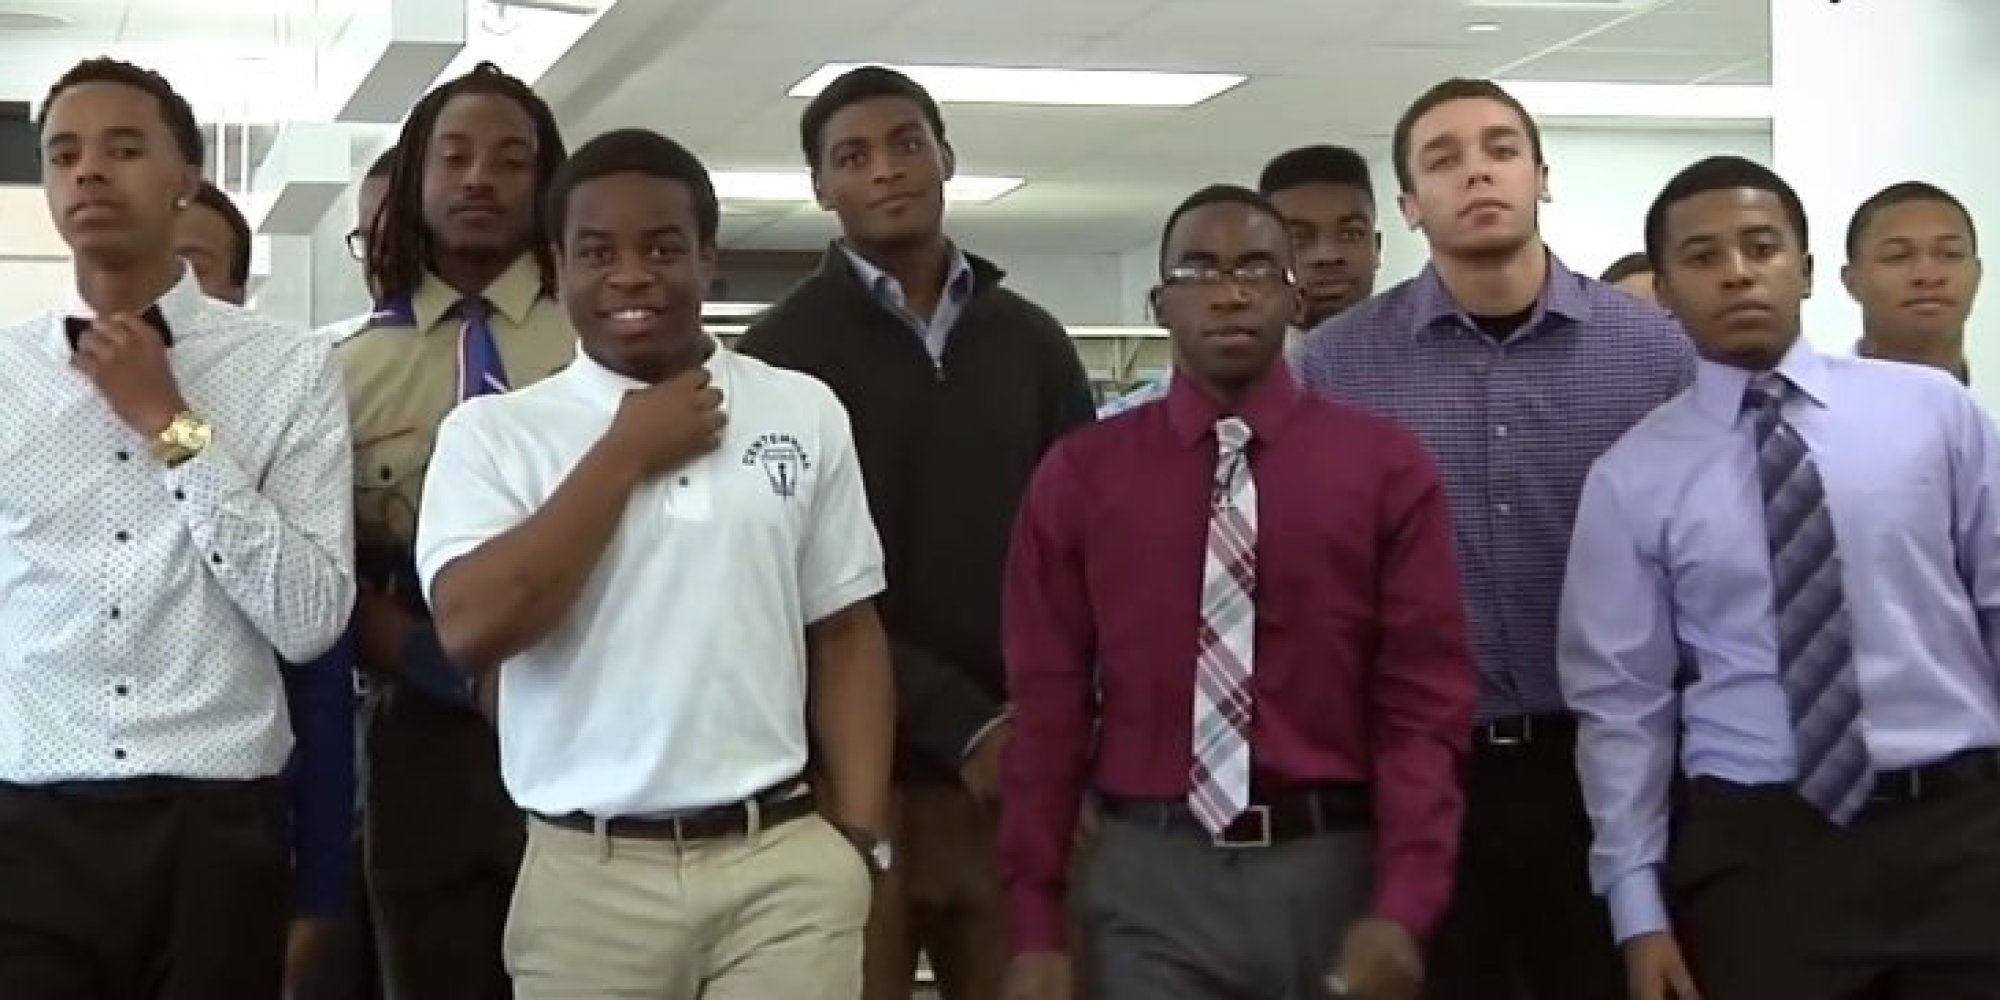 black males well being deficit hudson valley news network